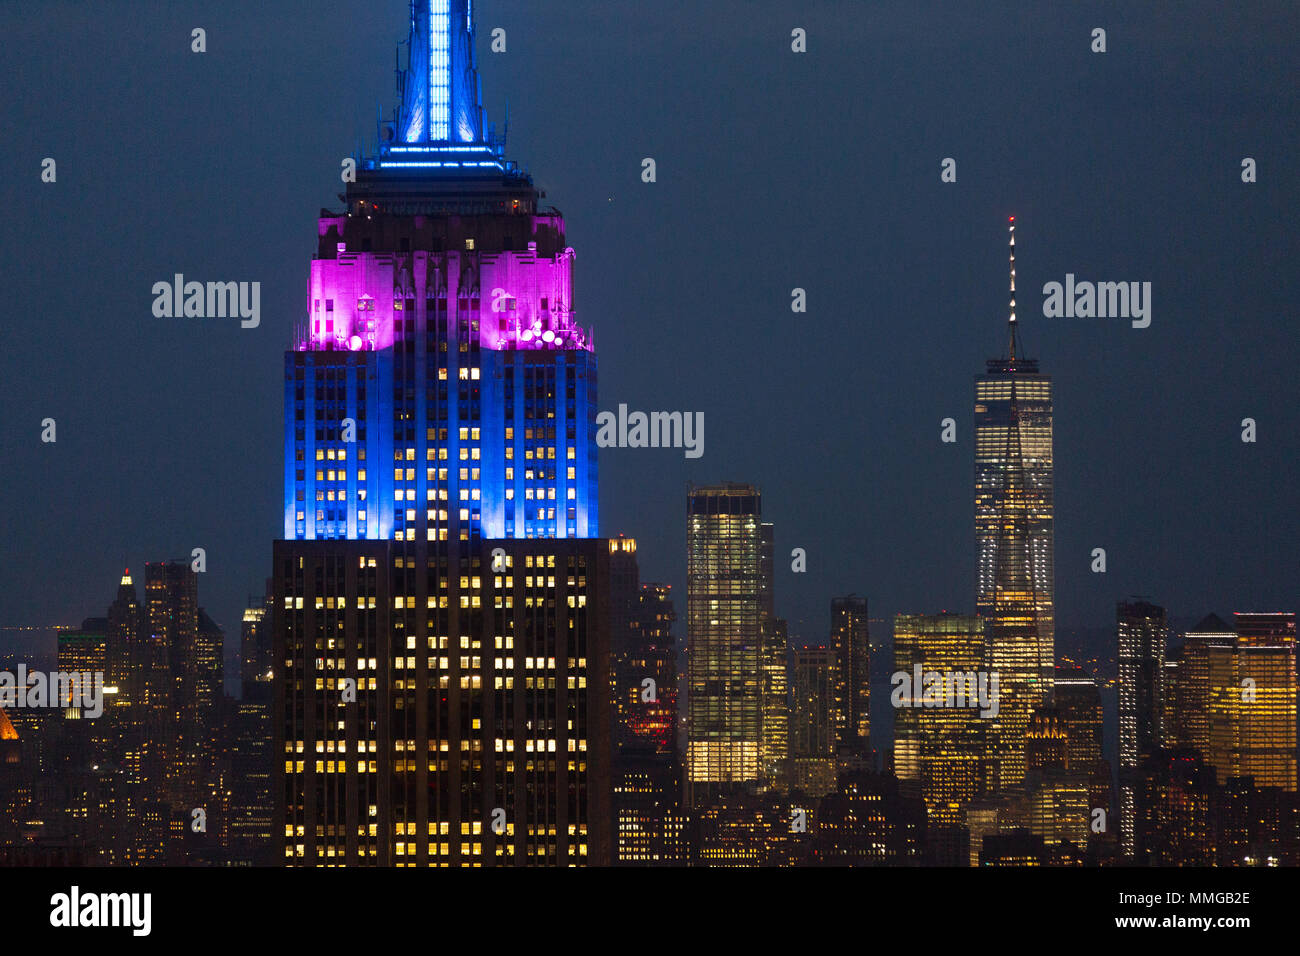 The Empire State Building and One World Trade Center at night seen from the Top of the Rock, New York city, USA - Stock Image